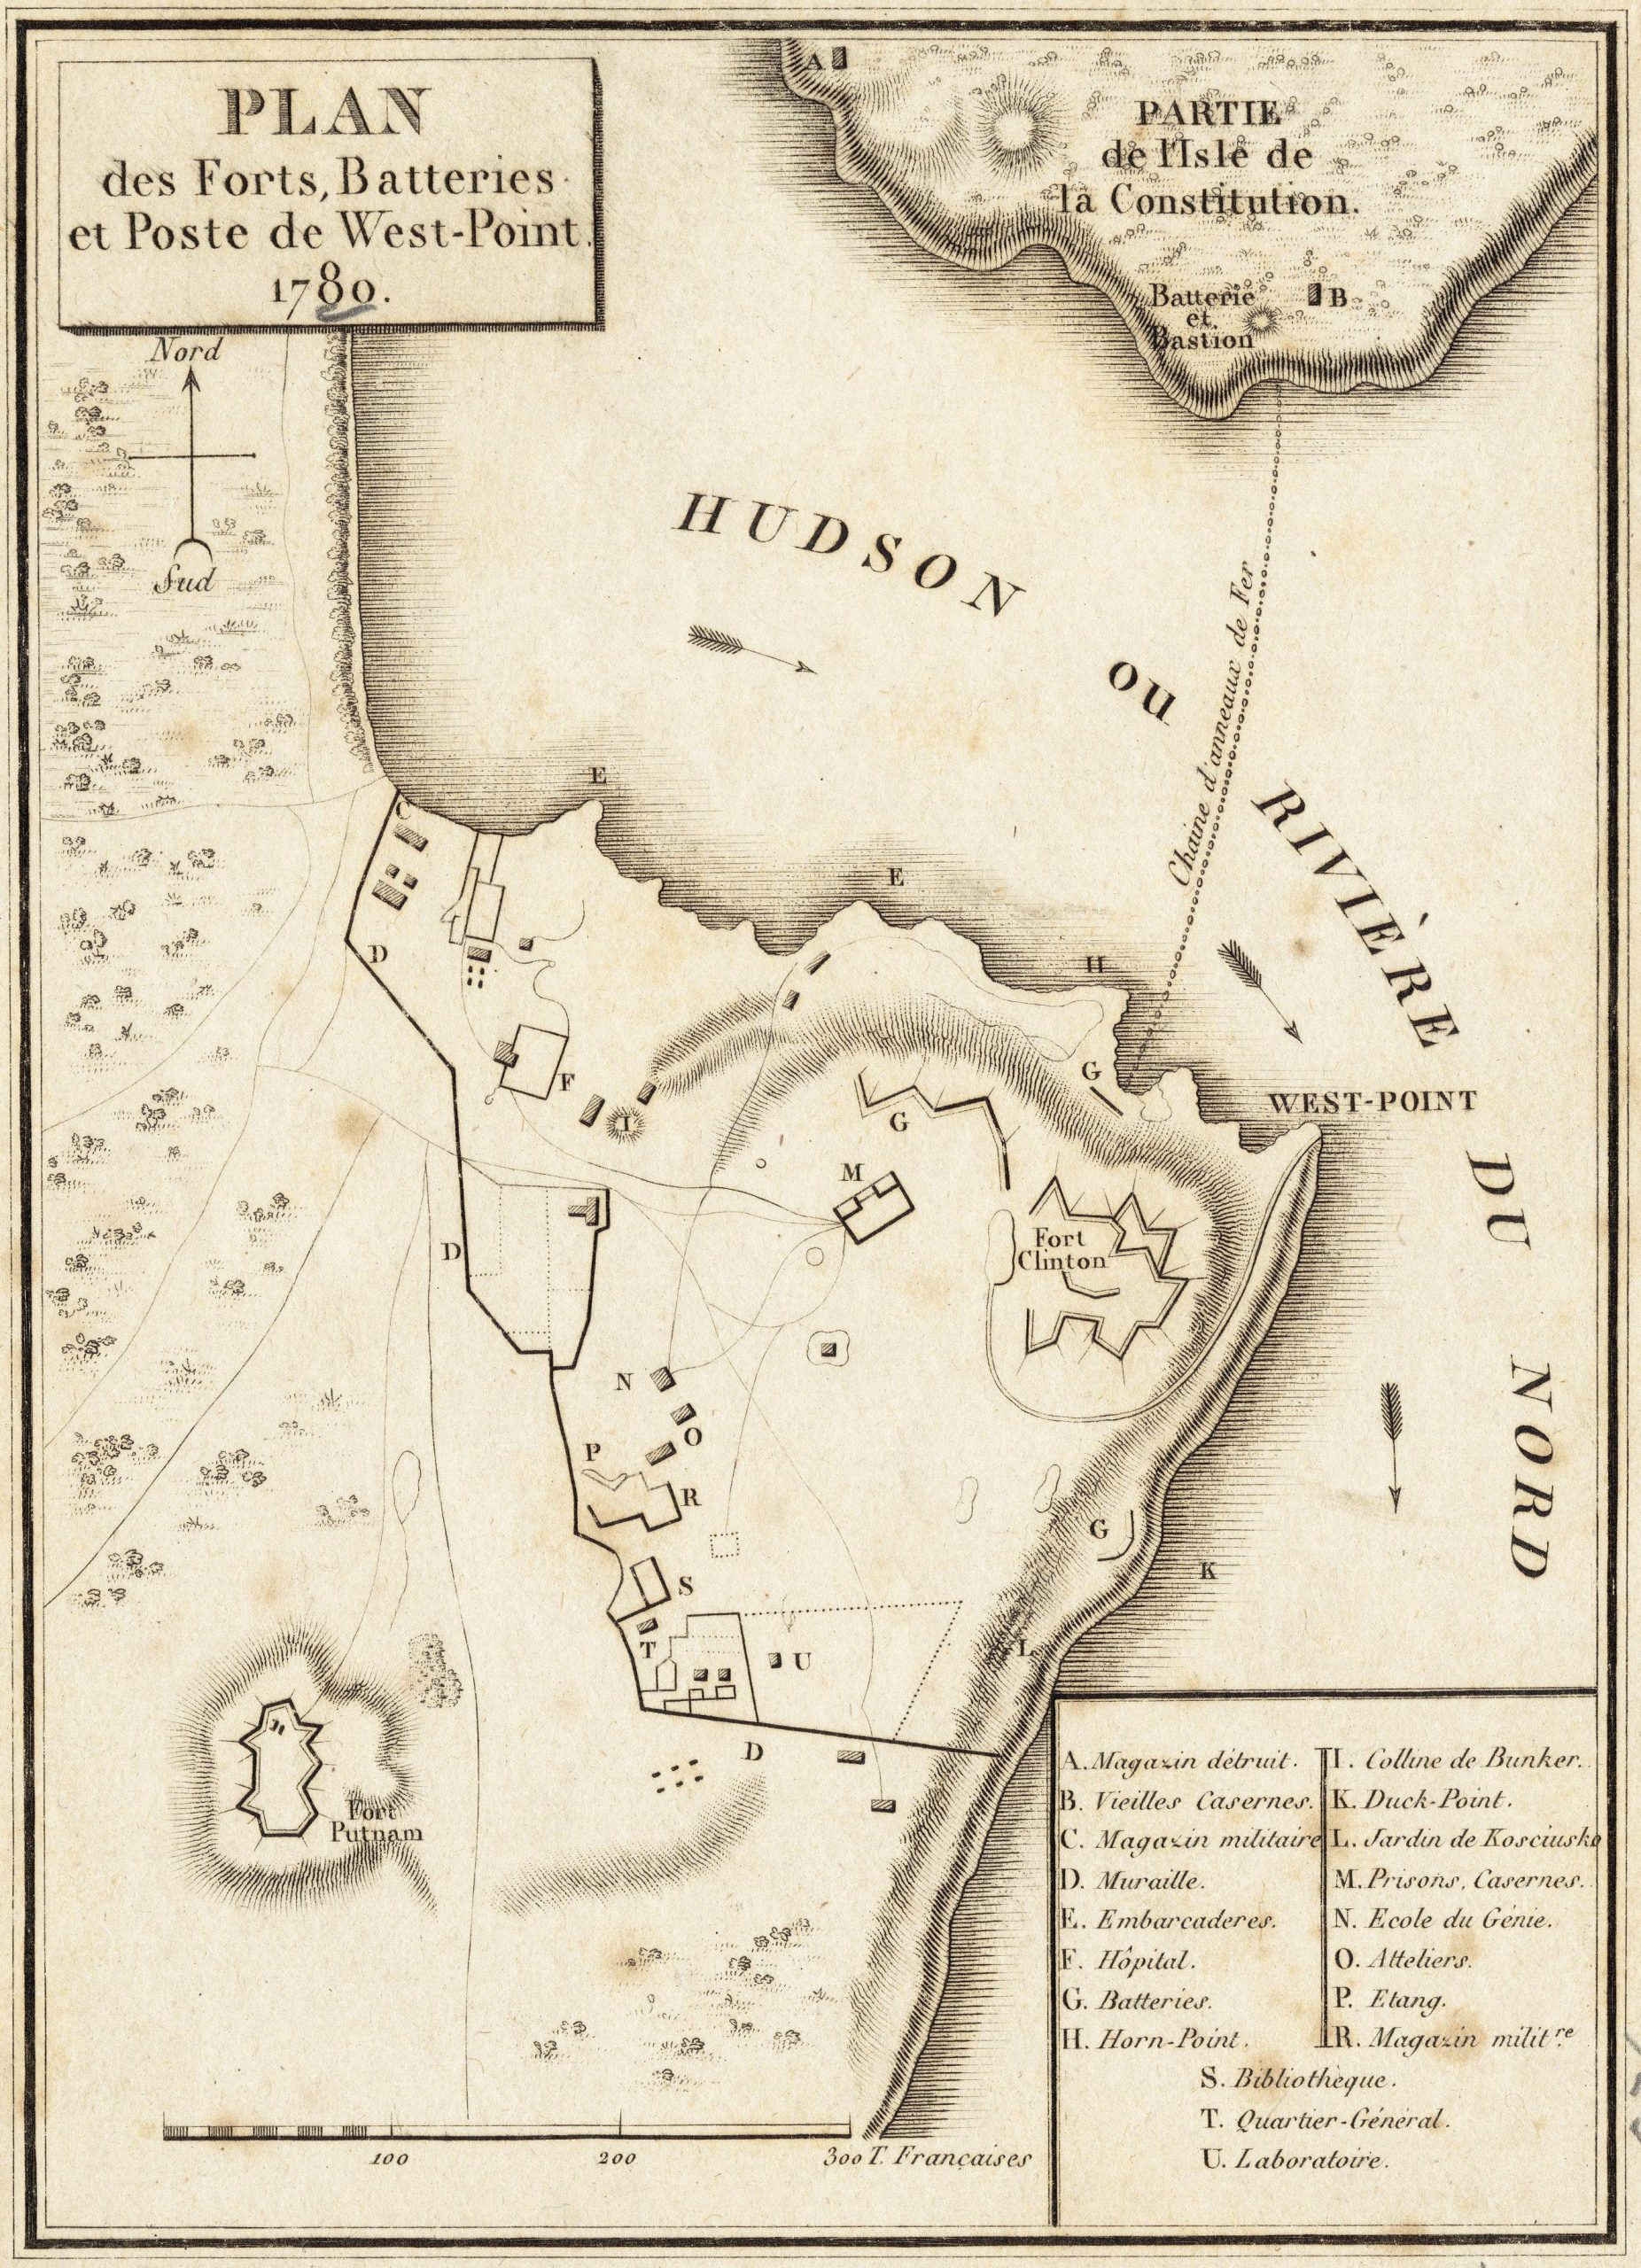 This French survey of West Point shows how its commanding heights controled the Hudson River.